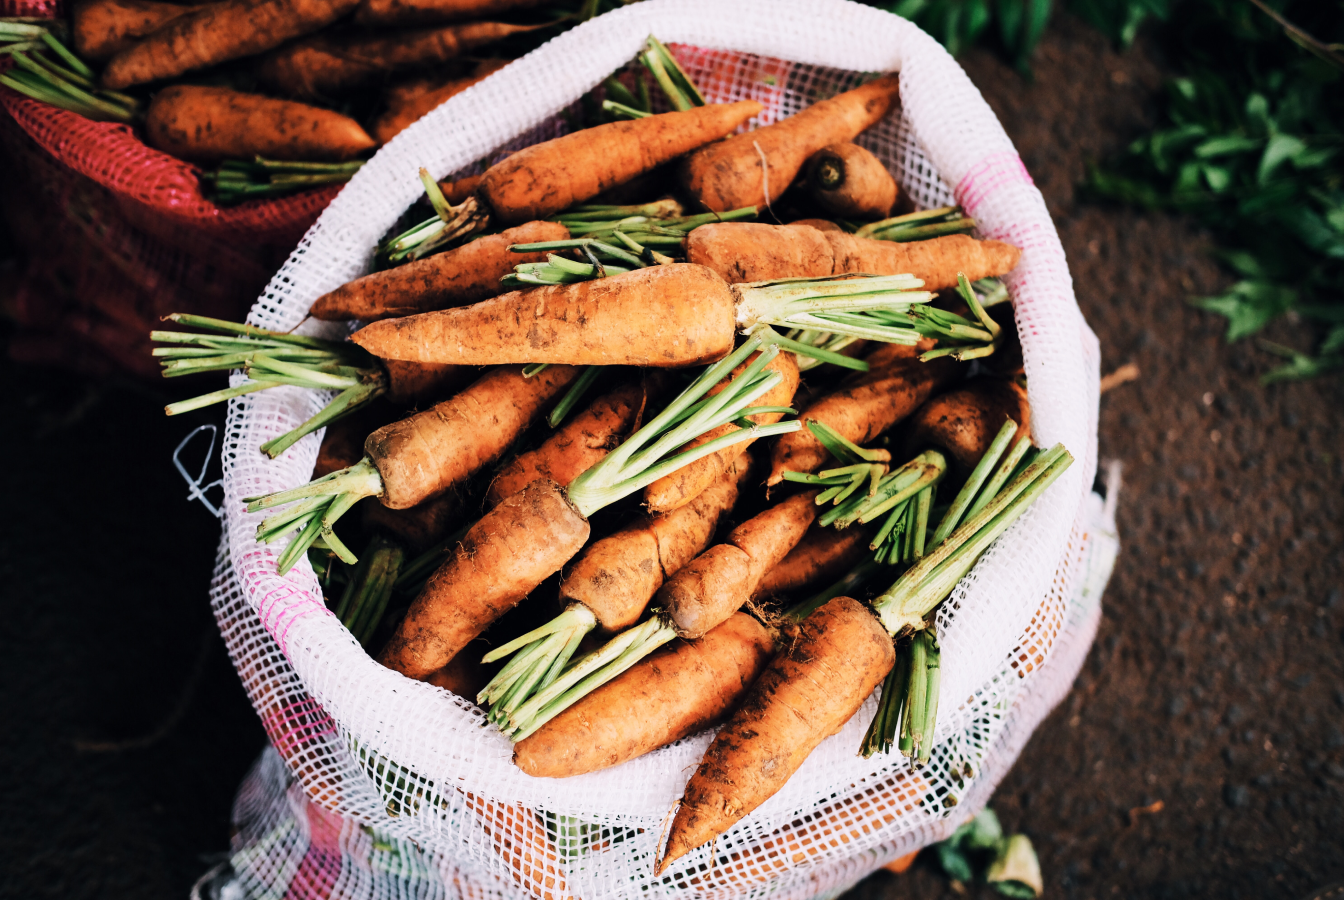 Bag of harvested carrots